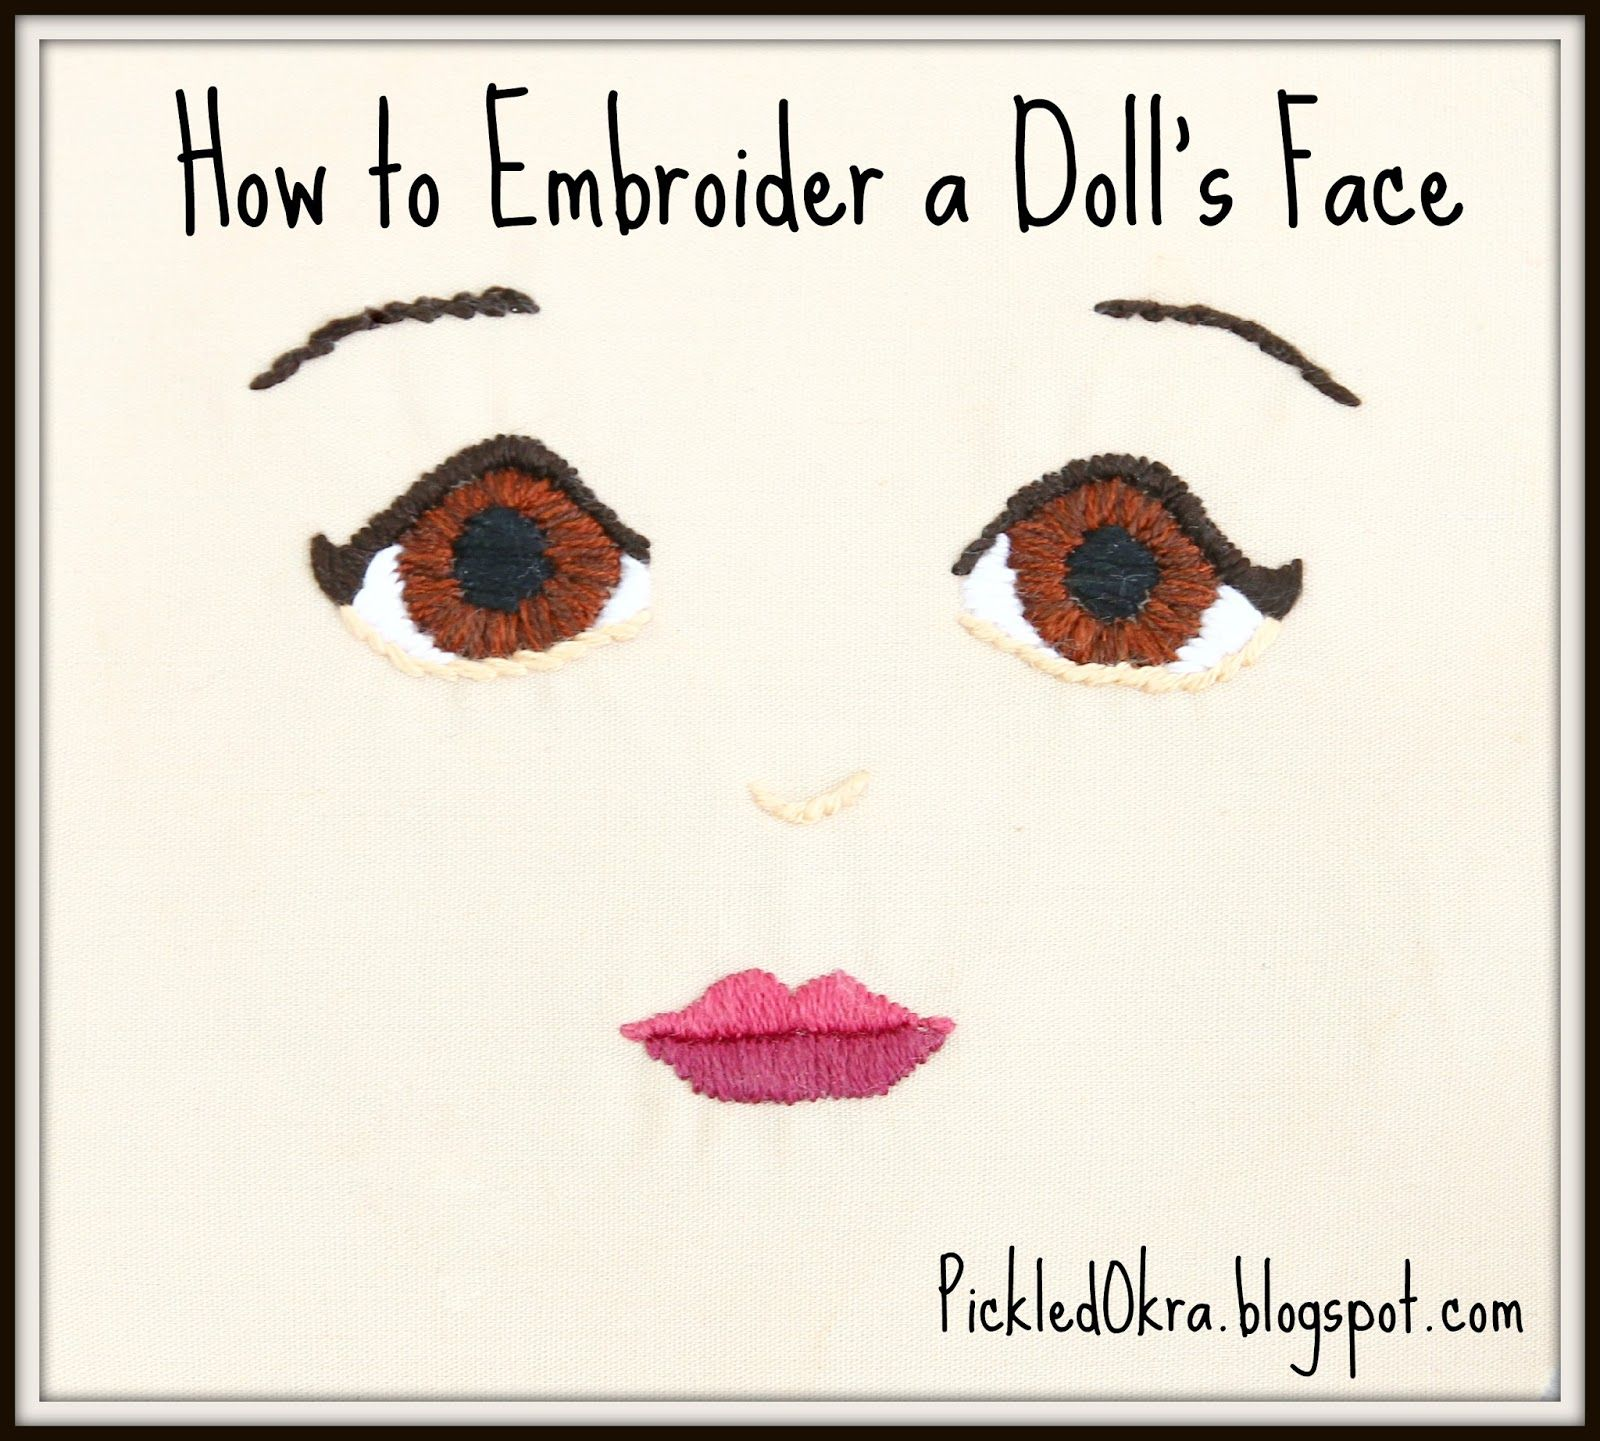 How To Embroider A Doll's Face V2 Easy To Use Tutorial!